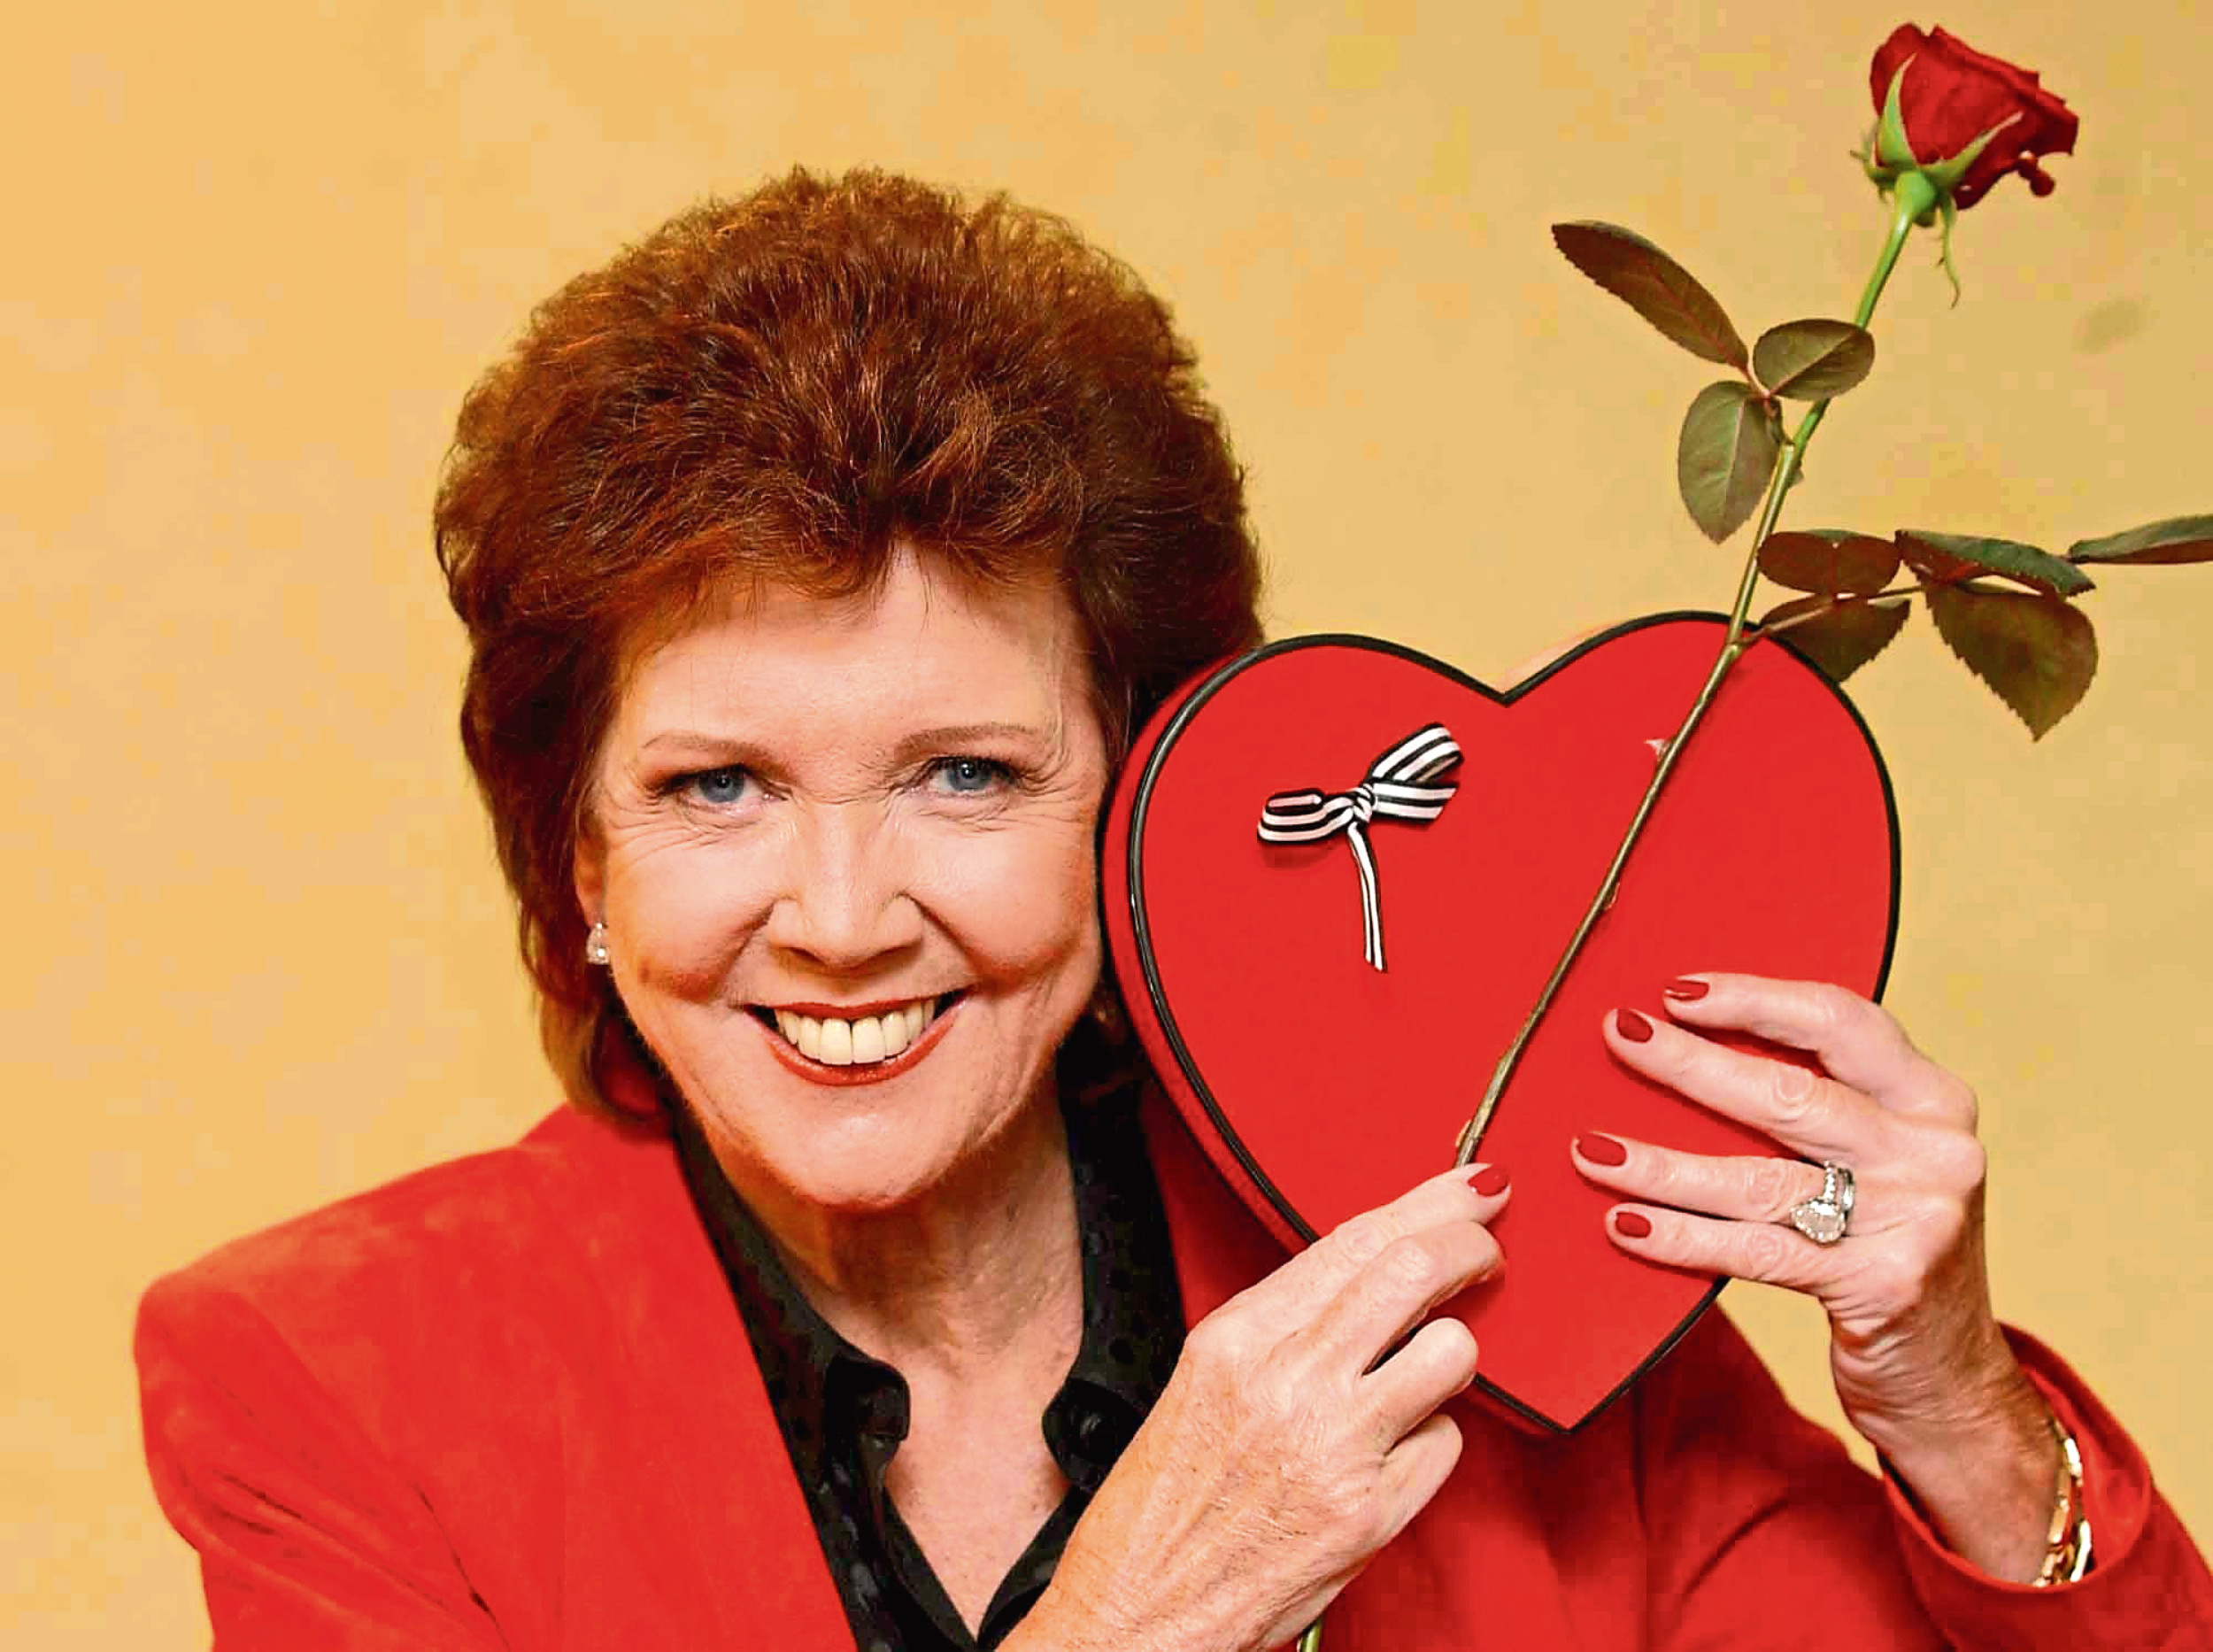 Cilla's role as Blind Date host won her a new generation of fans